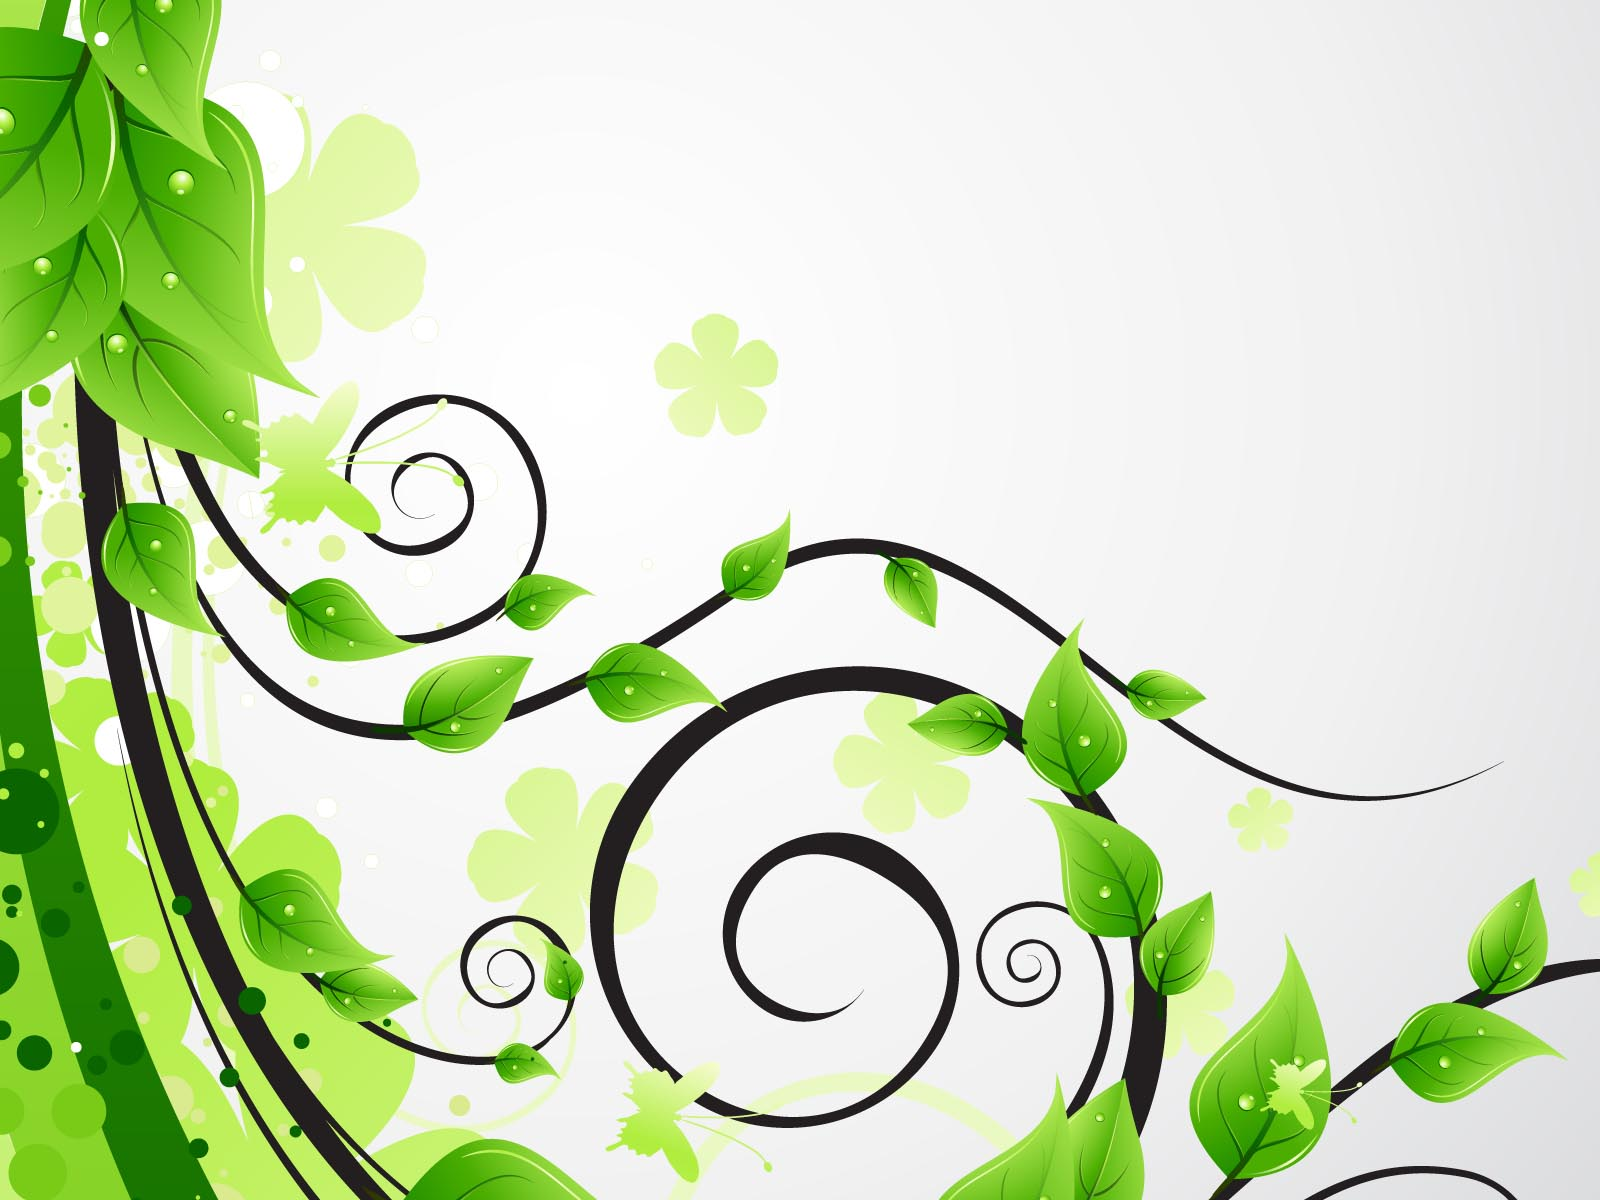 Green floral leaves PPT Backgrounds - 3D, Flowers, Nature